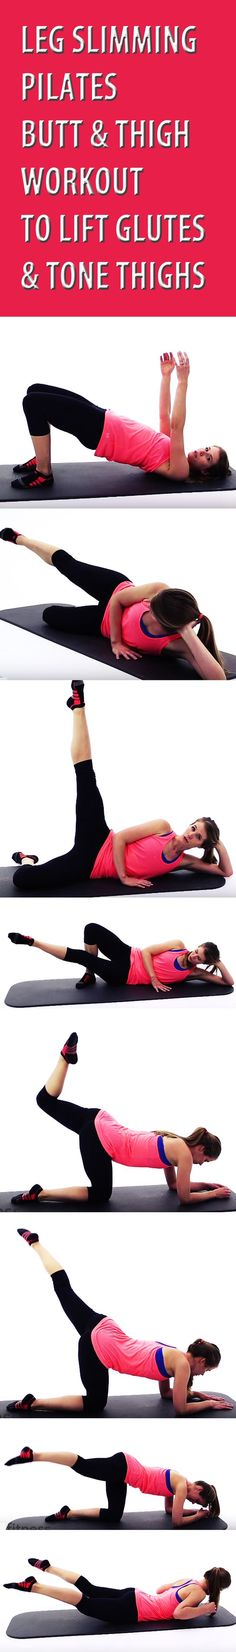 Pilates is a great low impact, easy-on-the-knees way to tone and shape the lower body, particularly the butt and thighs. Make no mistake; despite this not being one of our more advanced routines, your legs will be burning before you're finished with this workout! WORKOUT STRUCTURE: 40 Seconds Active, 10 Seconds Rest.  #buttworkout #thighworkout #buttlift #bubblebutt #gluteworkout